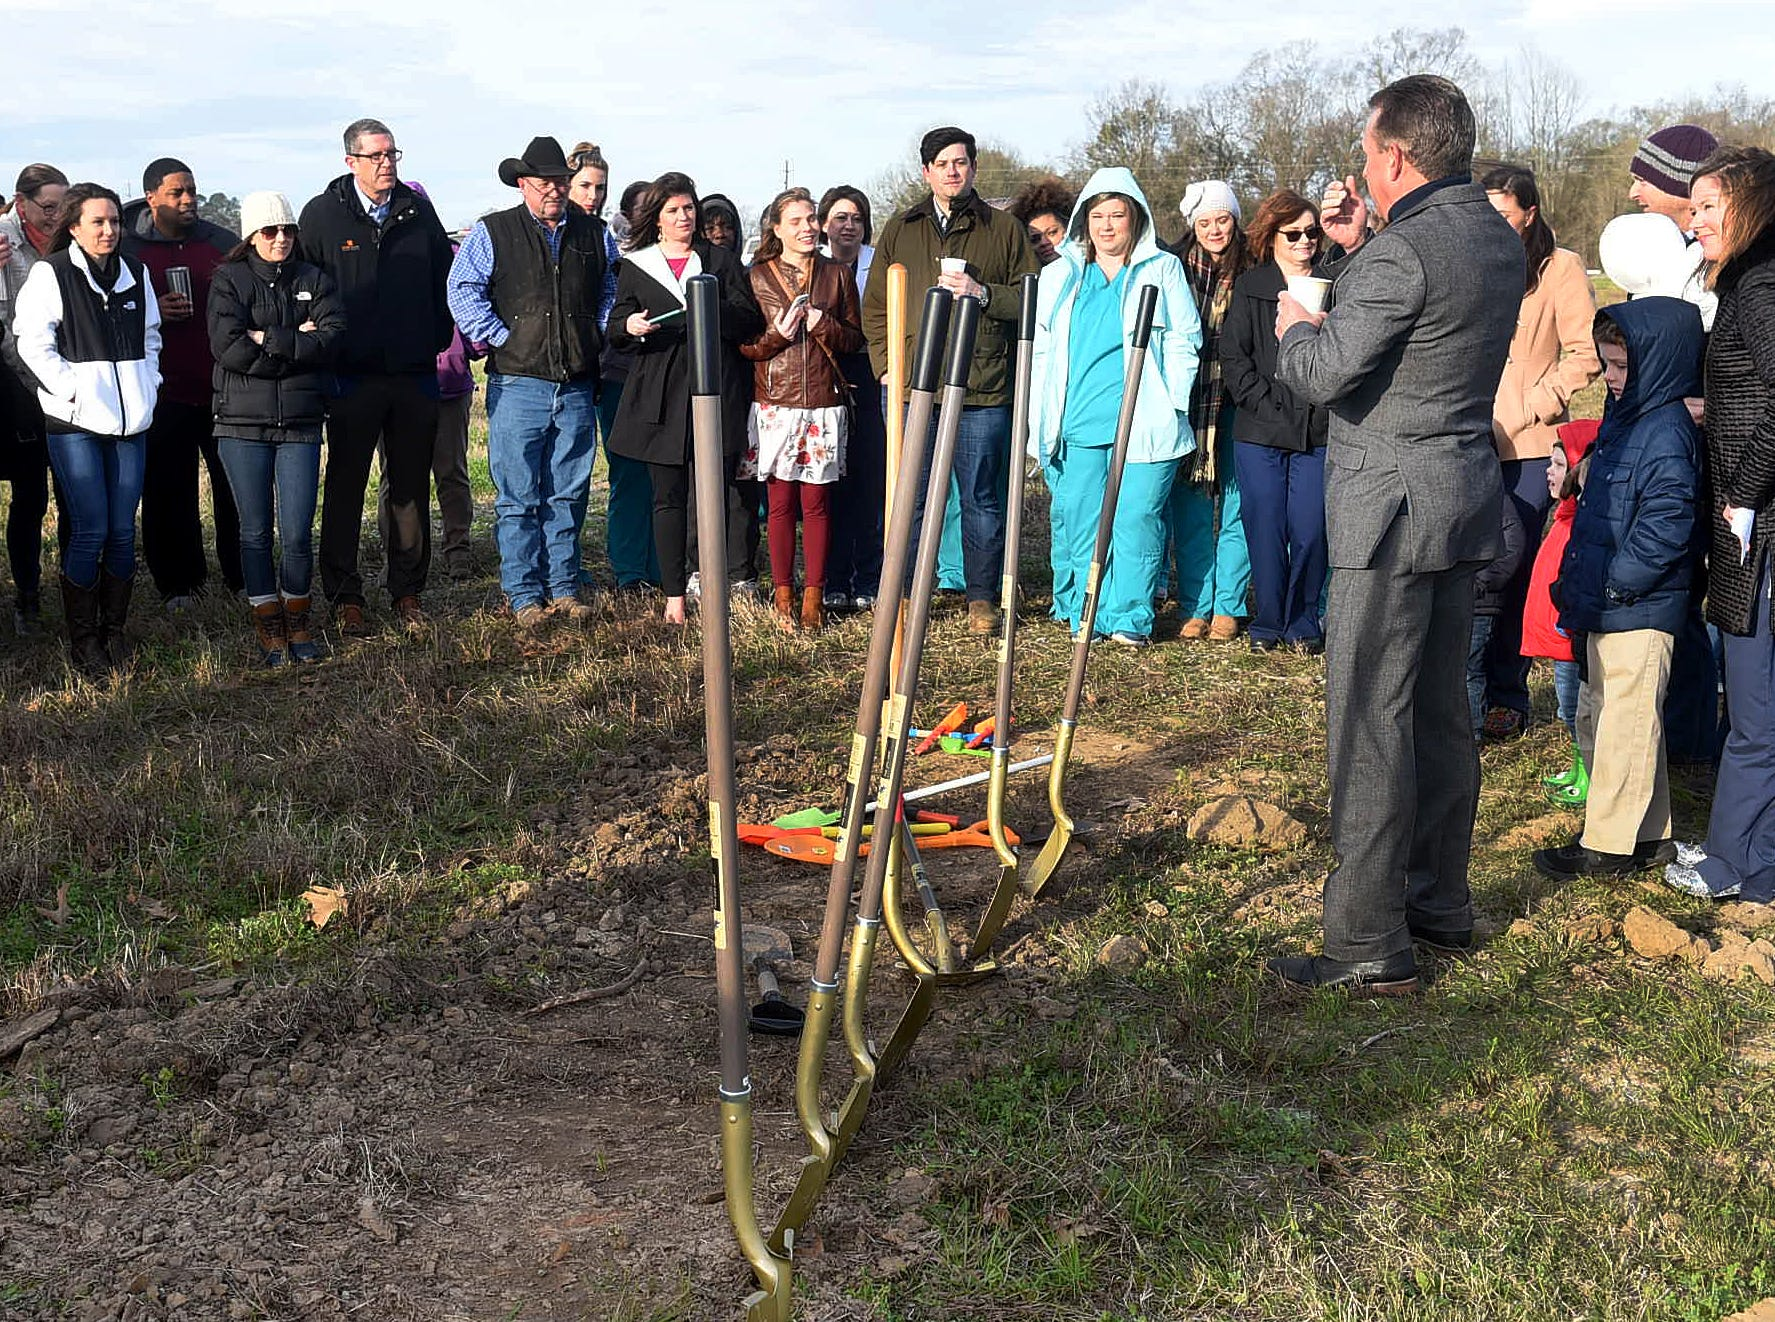 Groundbreaking ceremony for Lily Pad Pediatrics